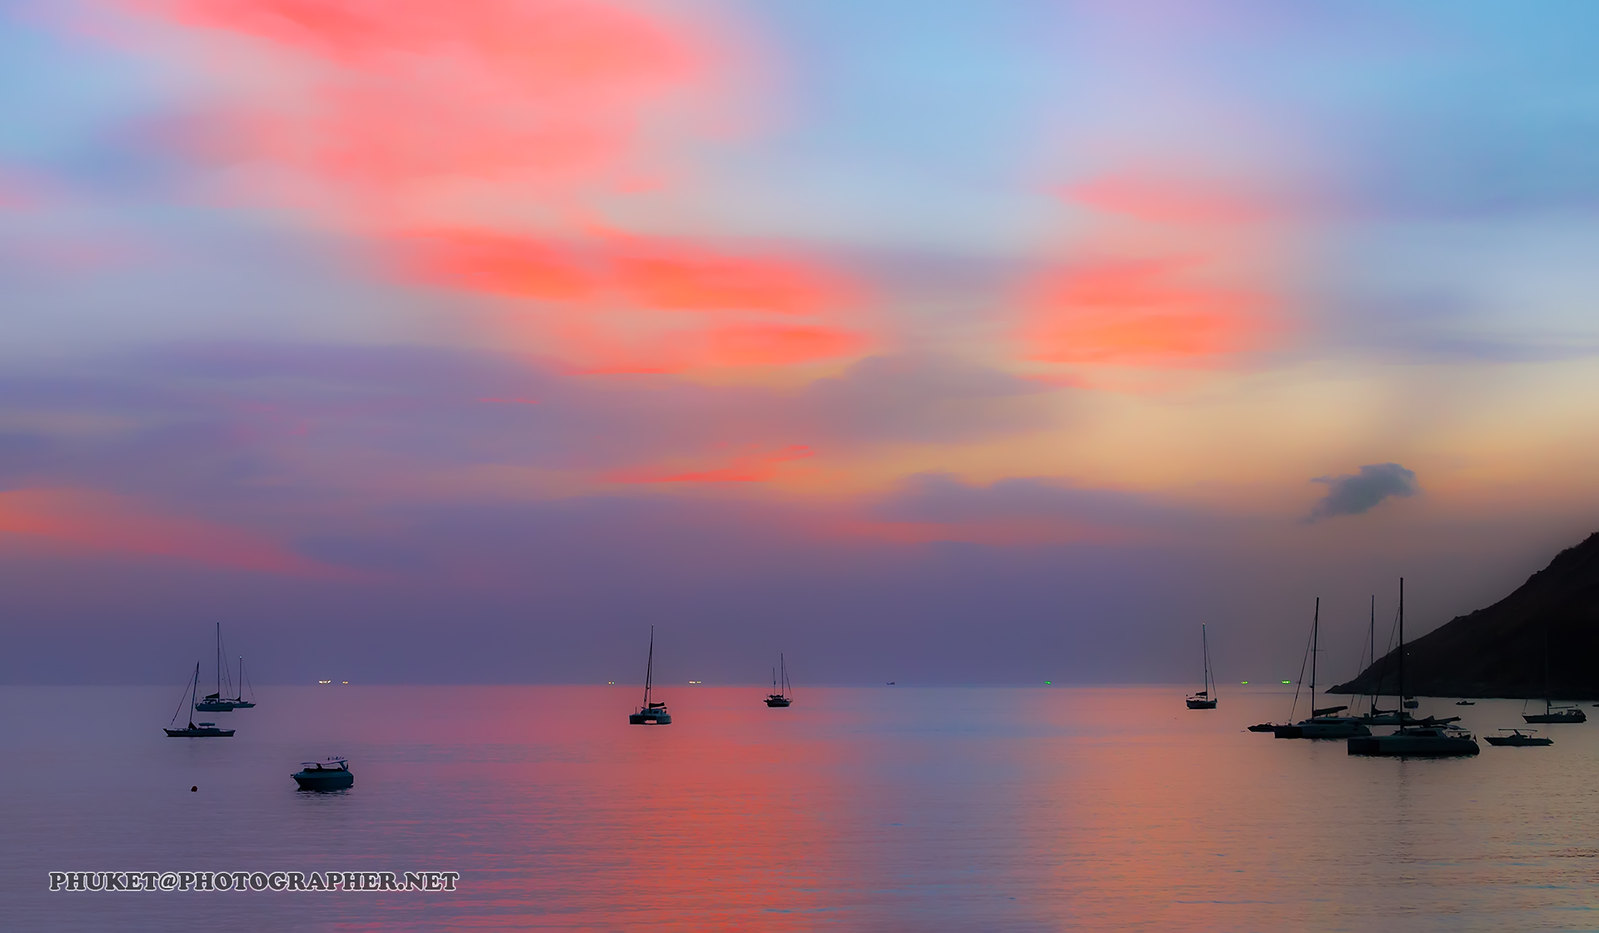 Sunset on the beacn with yachts and catamarans. Phuket AD4A5197s2